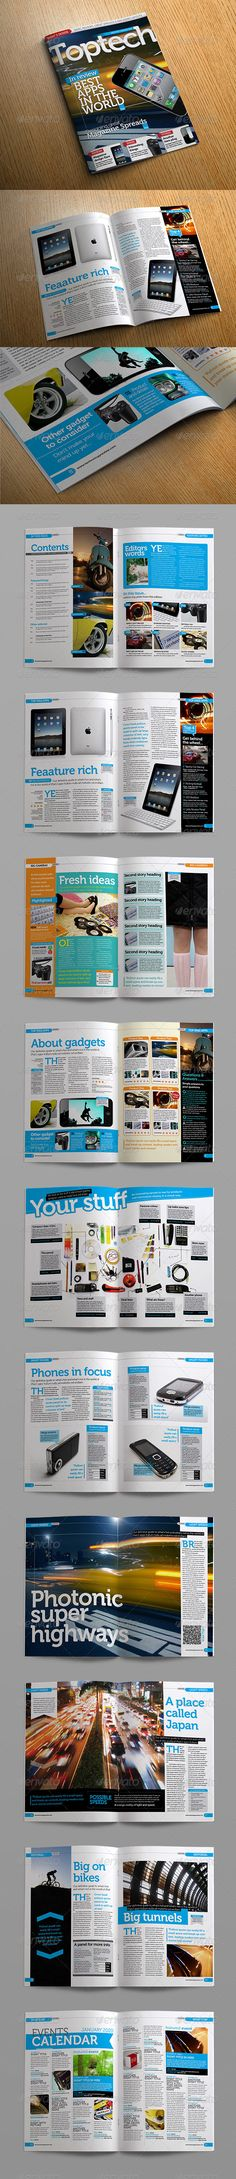 Character Design Quarterly Review : Print templates on pinterest